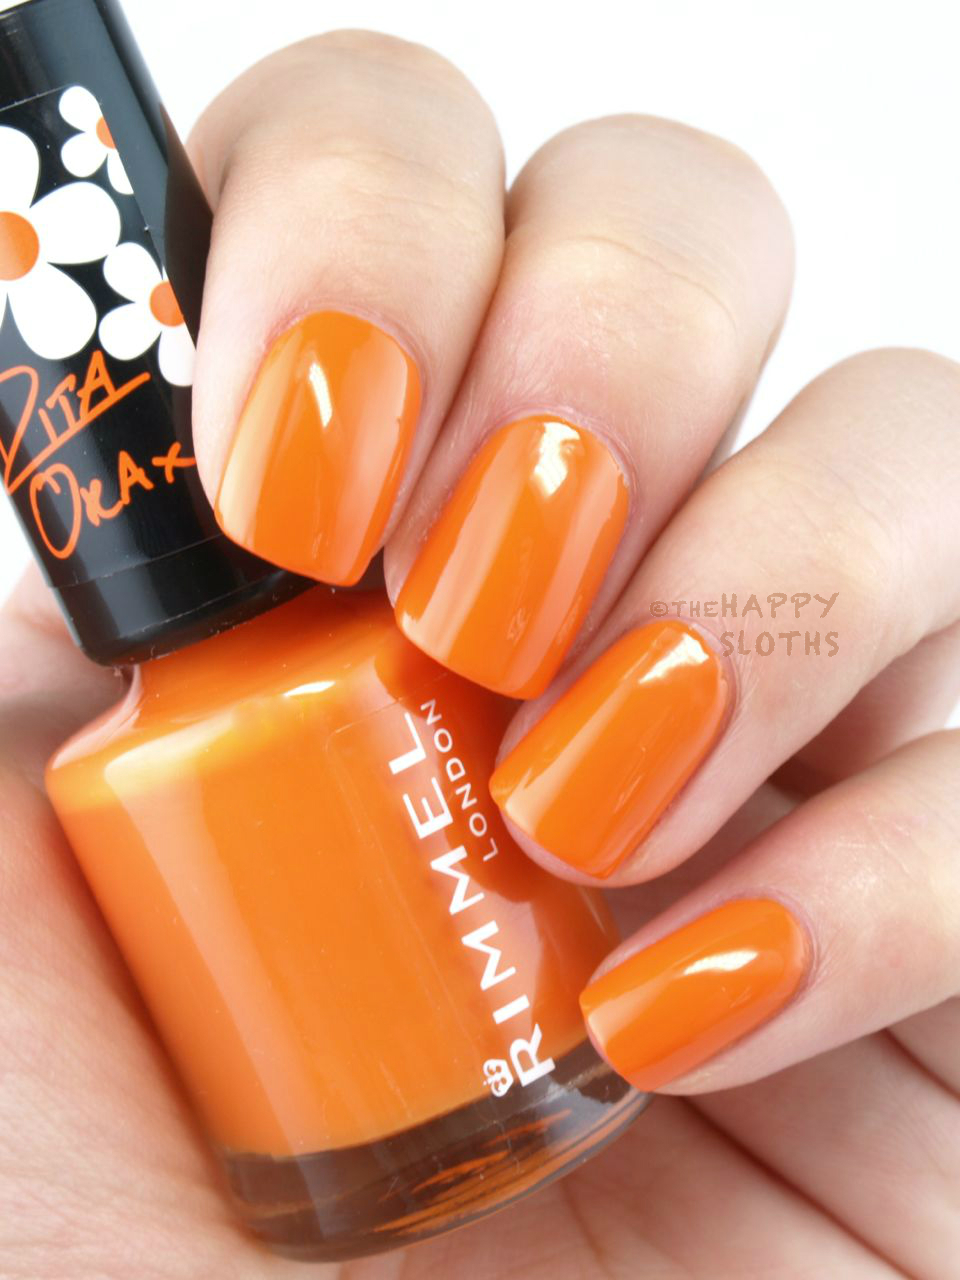 Rimmel London 60 Seconds Nail Polish by Rita Ora in \